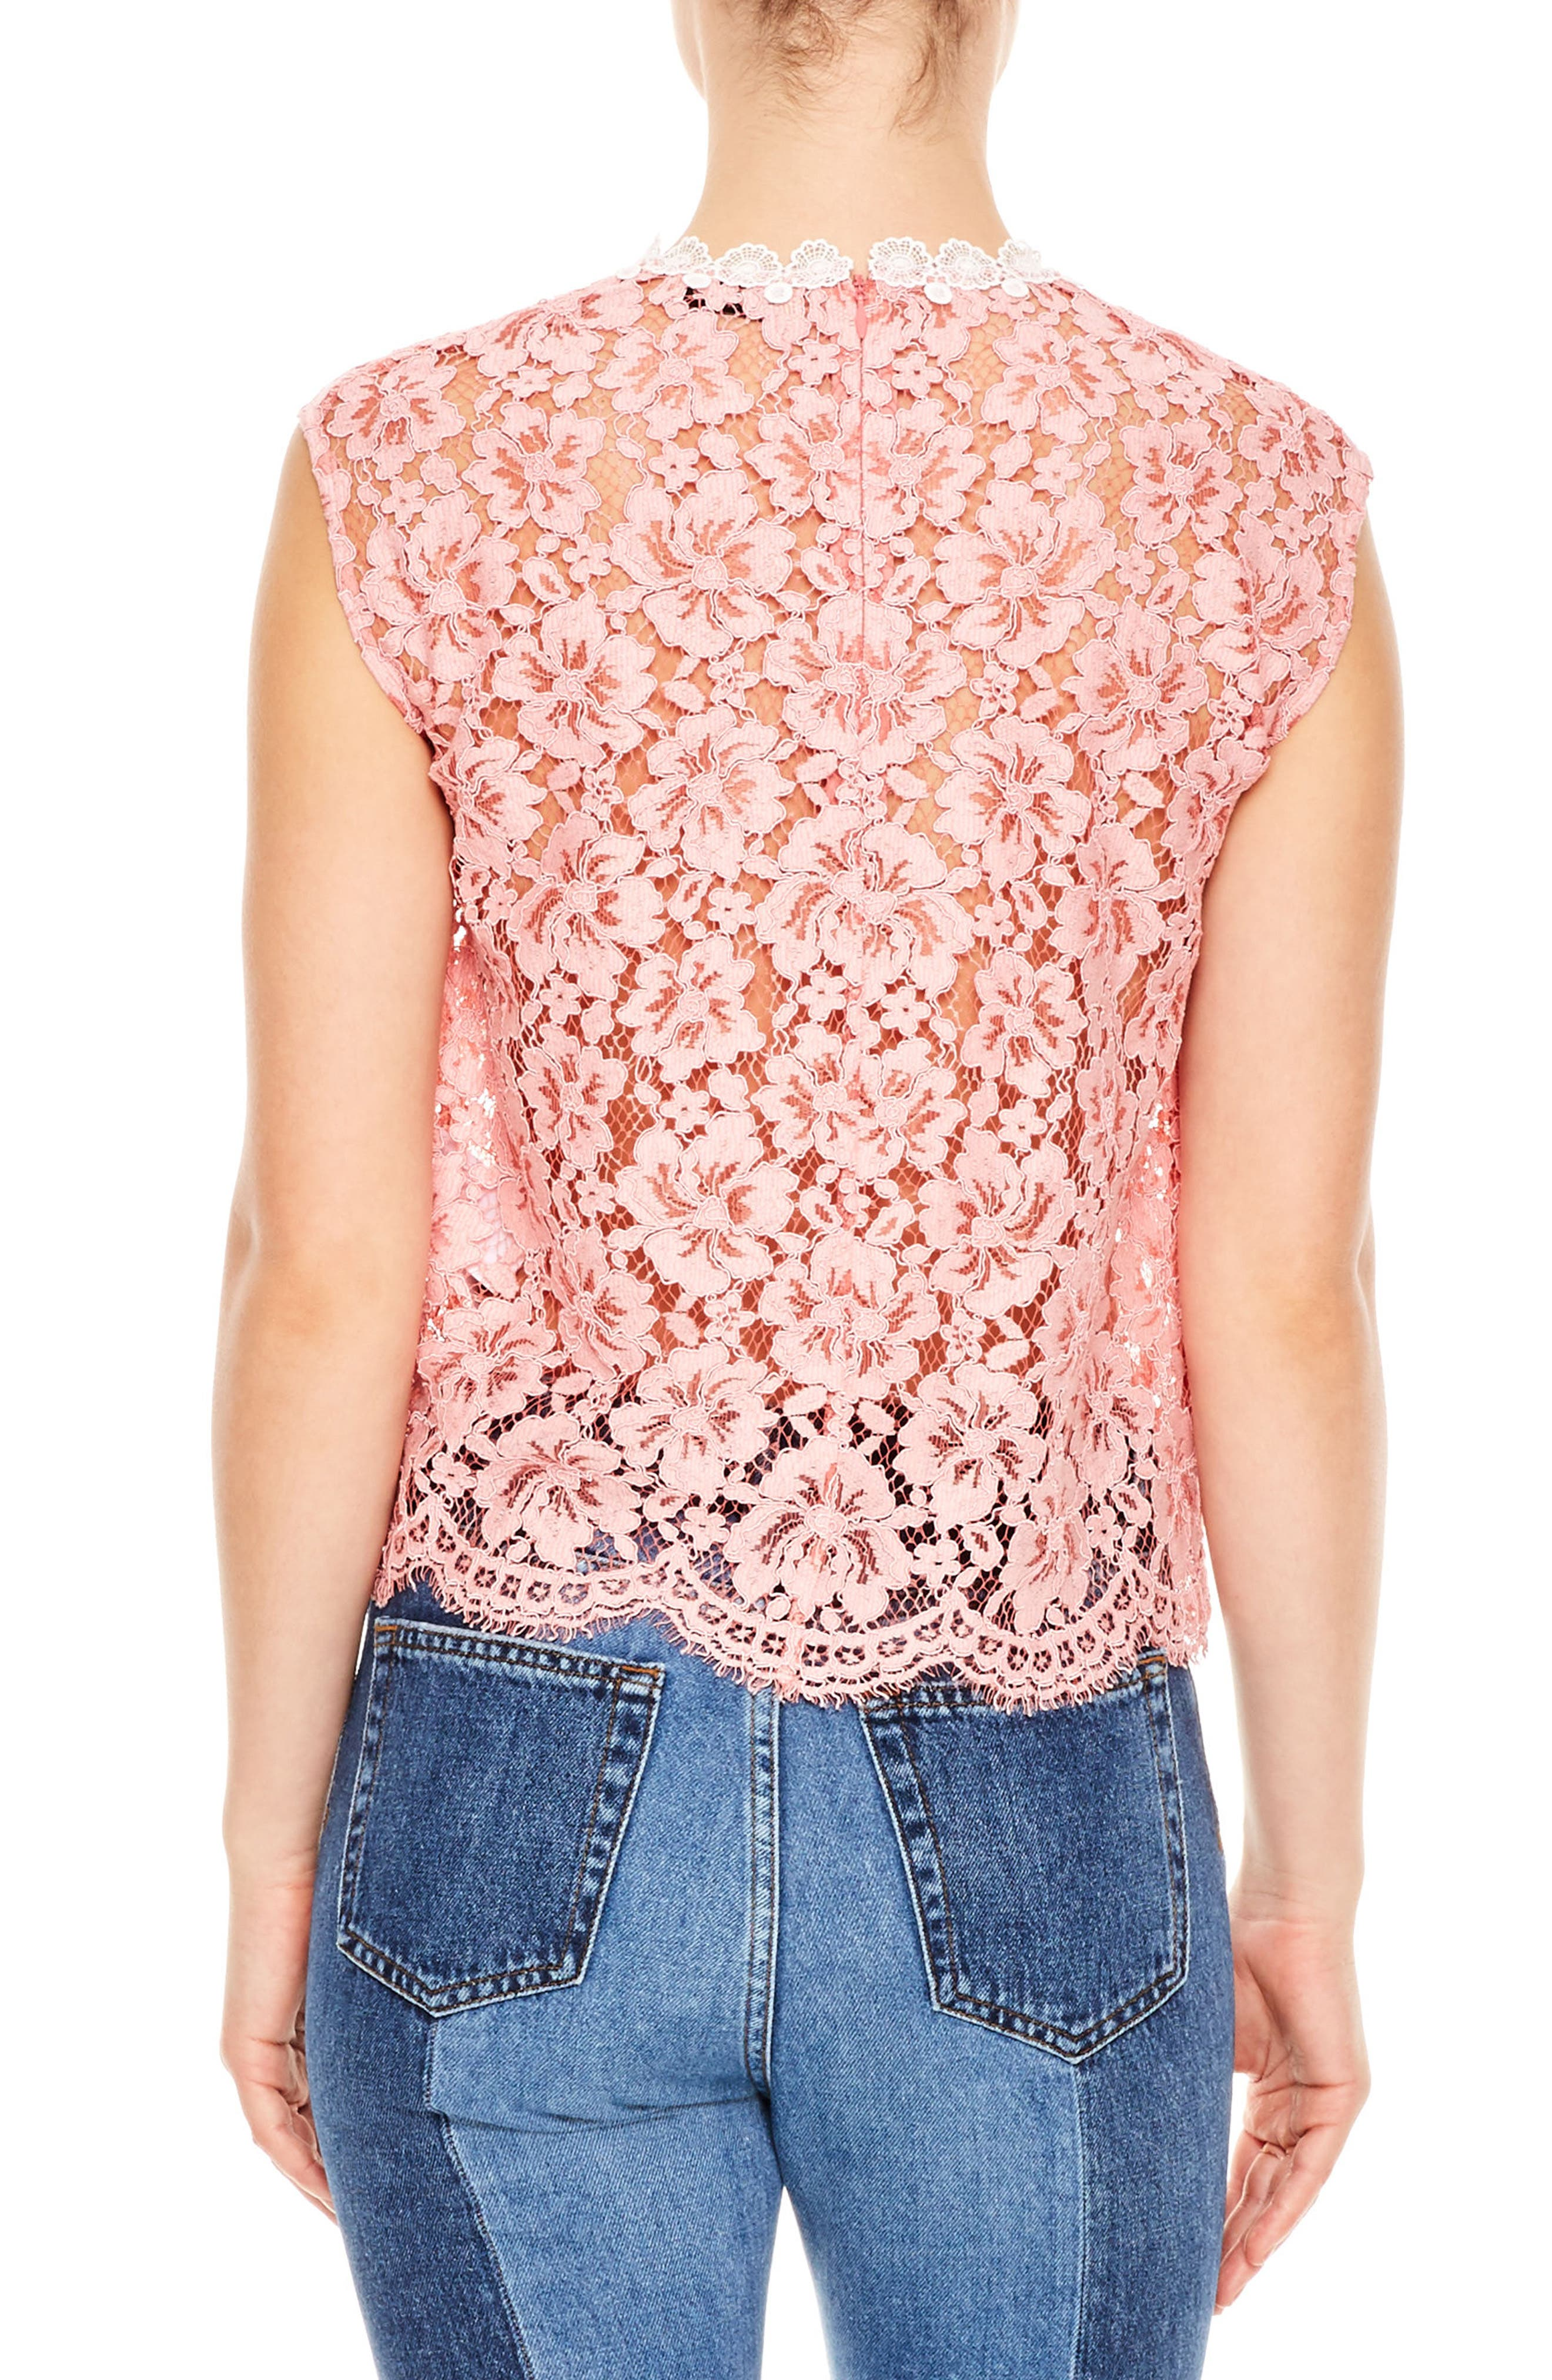 Rose Floral Lace Sleeveless Blouse,                             Alternate thumbnail 2, color,                             Pink